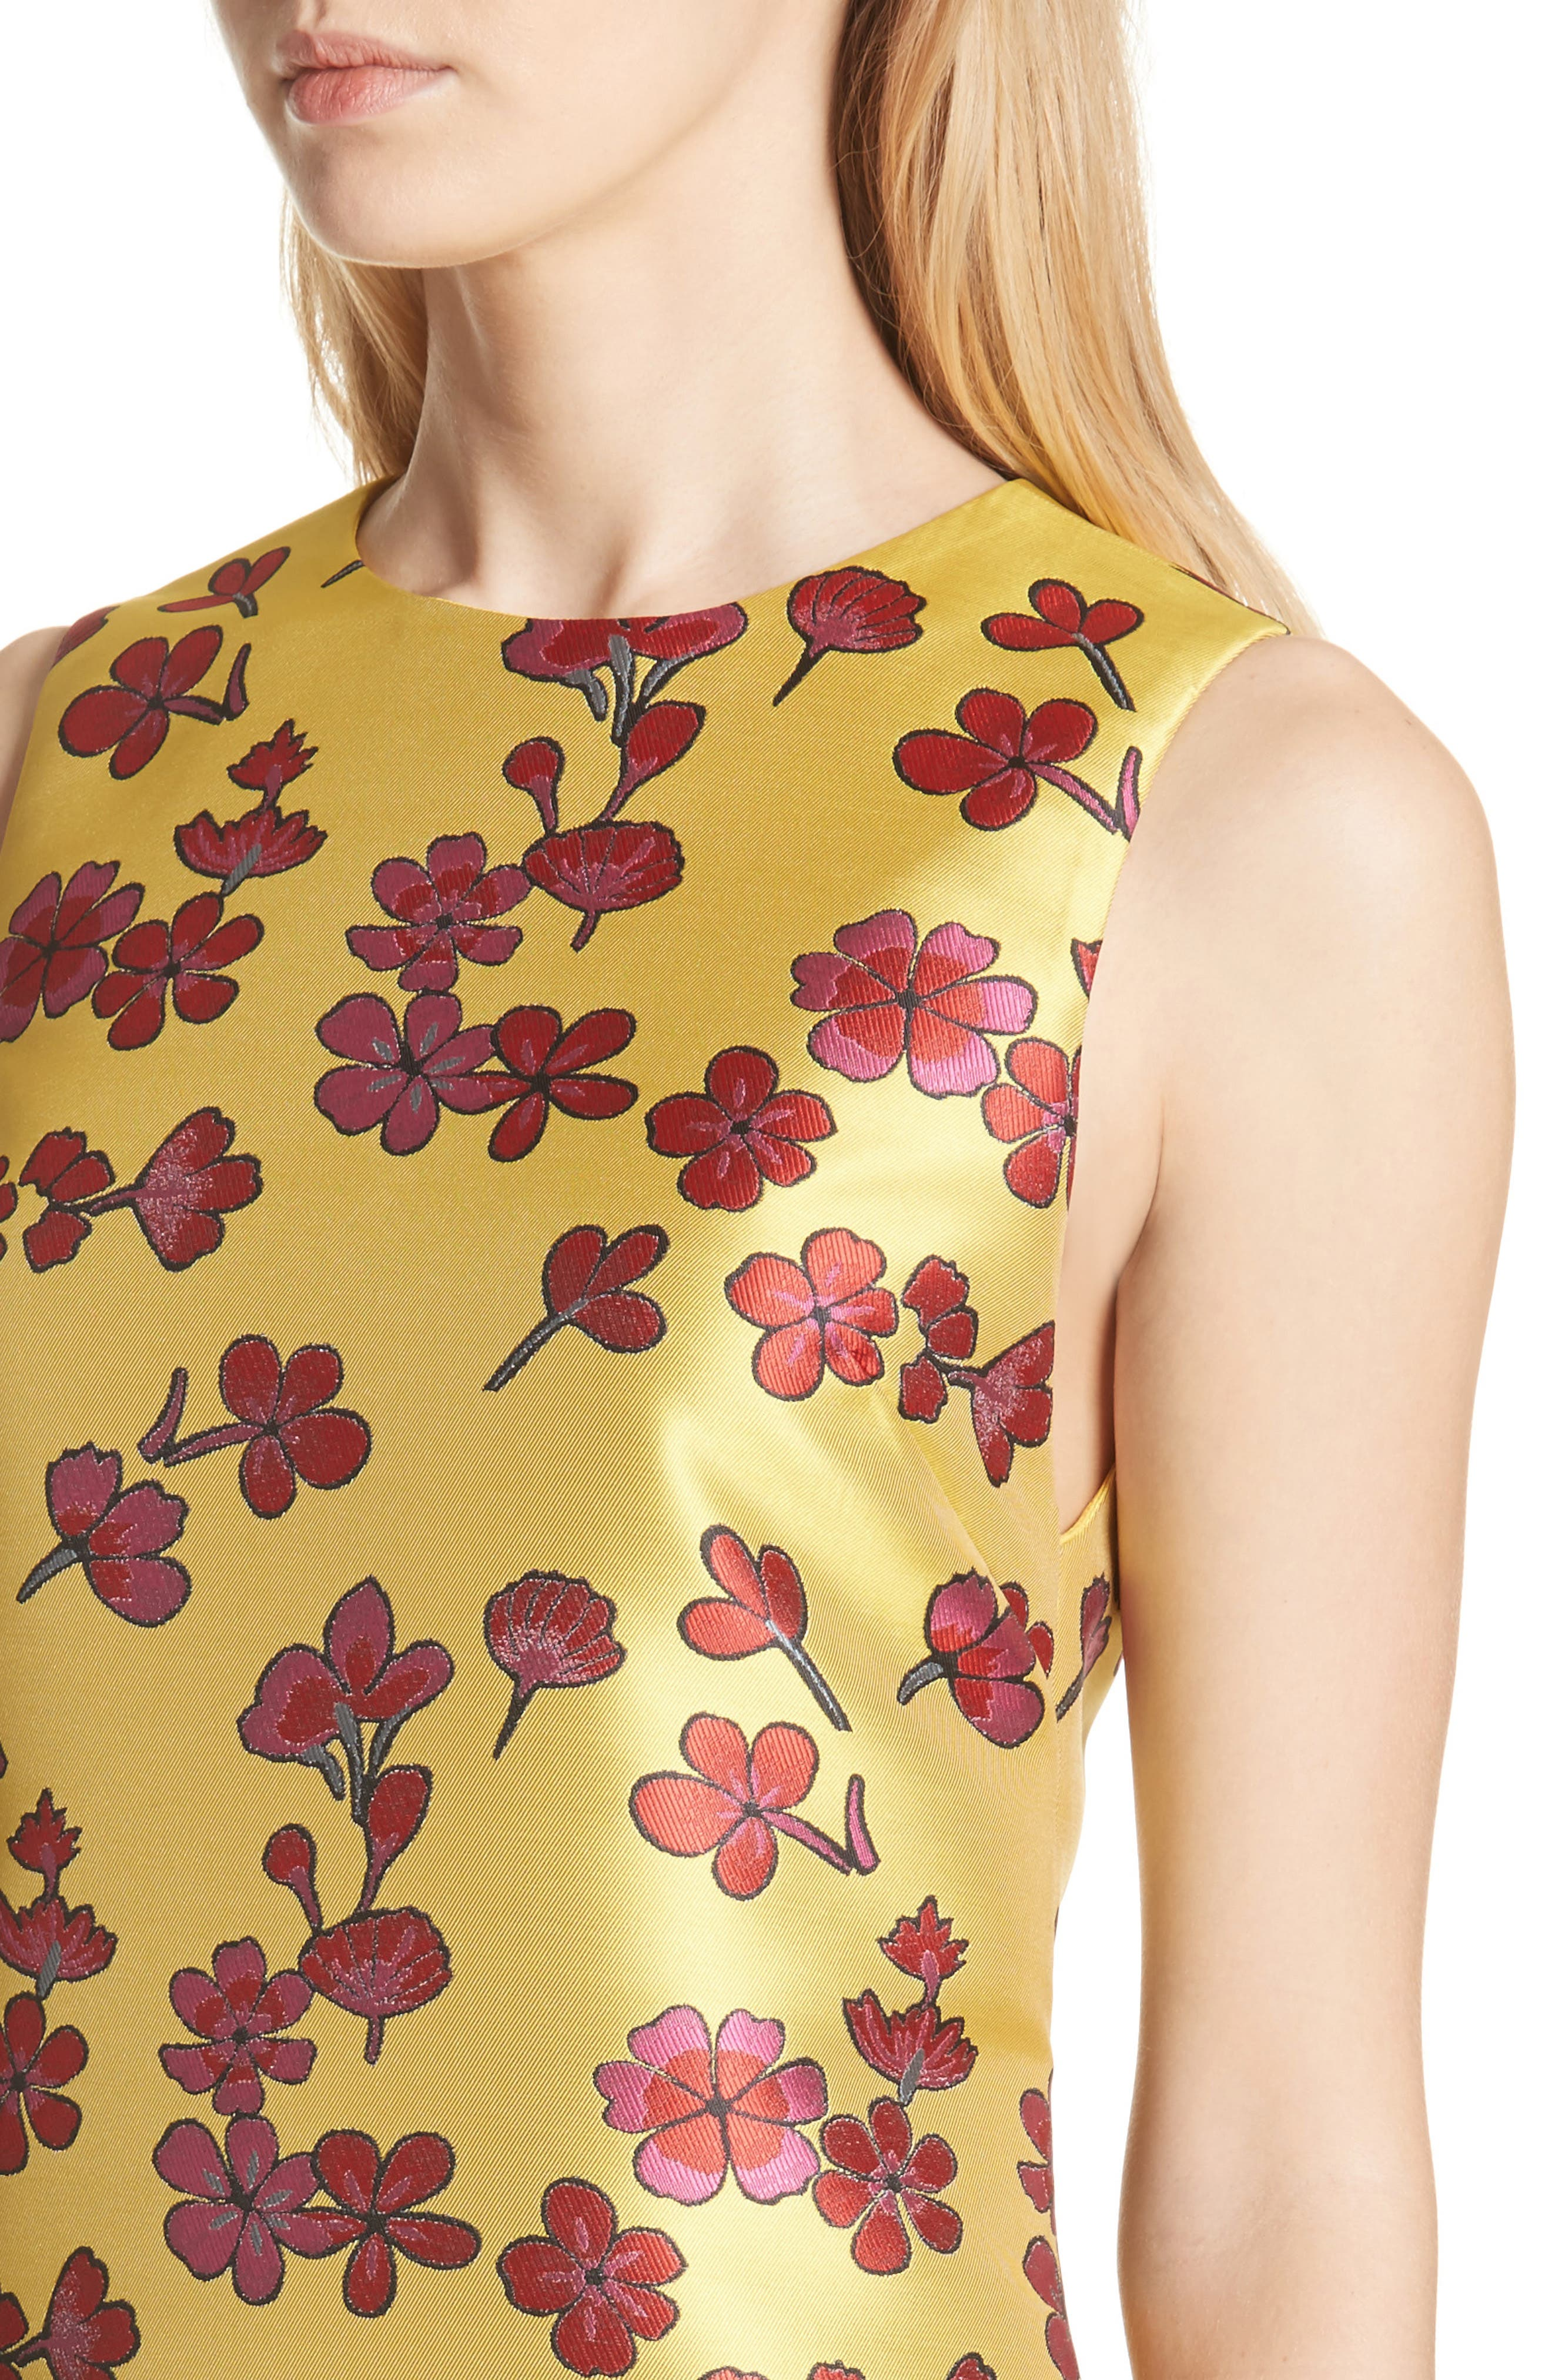 Coley Floral A-Line Shift Dress,                             Alternate thumbnail 4, color,                             Sunflower/ Poppy